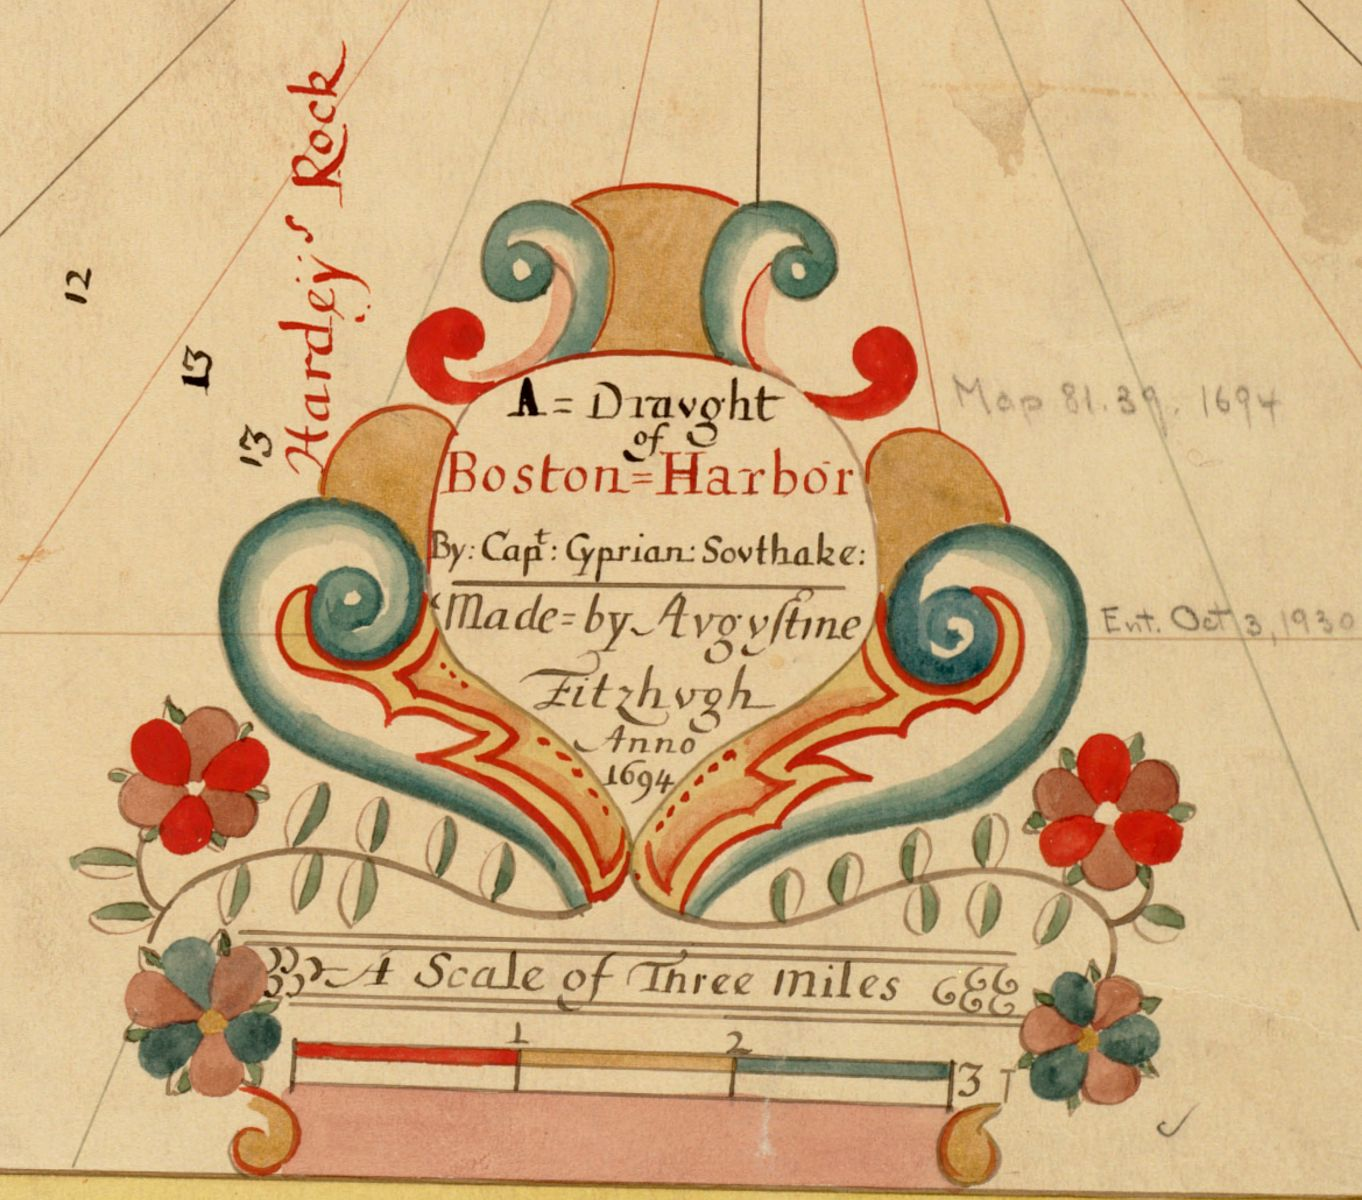 Detail of a cartouche from Southack's map of Boston Harbor.